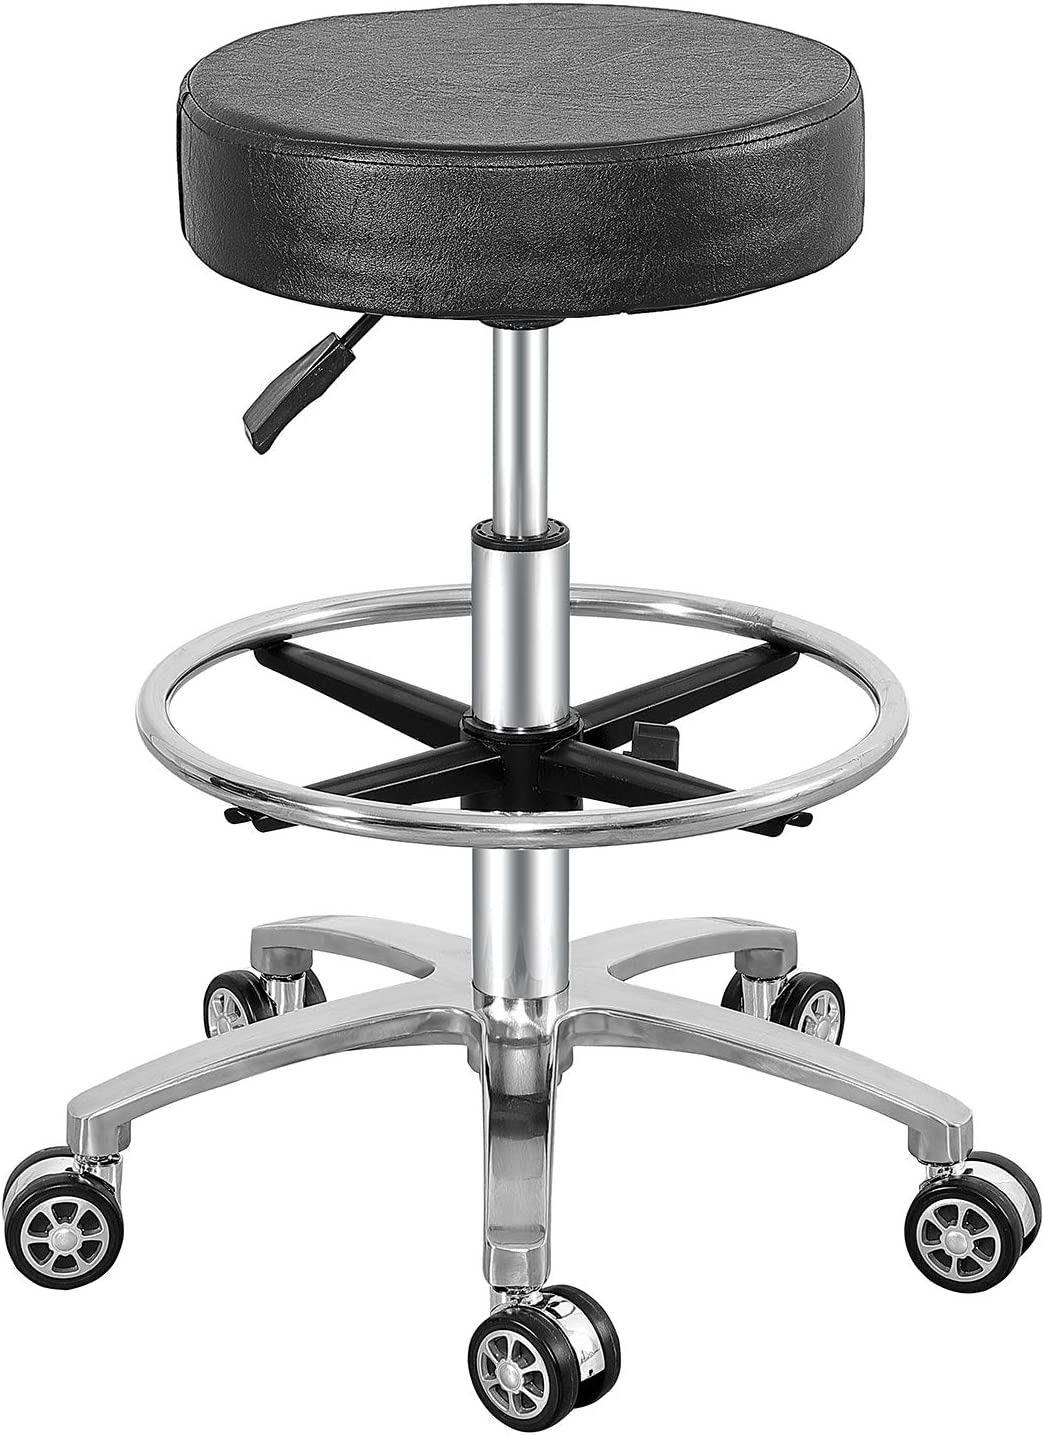 Rolling Stool Swivel Chair for Office Medical Salon Tattoo Kitchen Massage Work,Adjustable Height Hydraulic Stool with Wheels (Black, with Foot Rest)